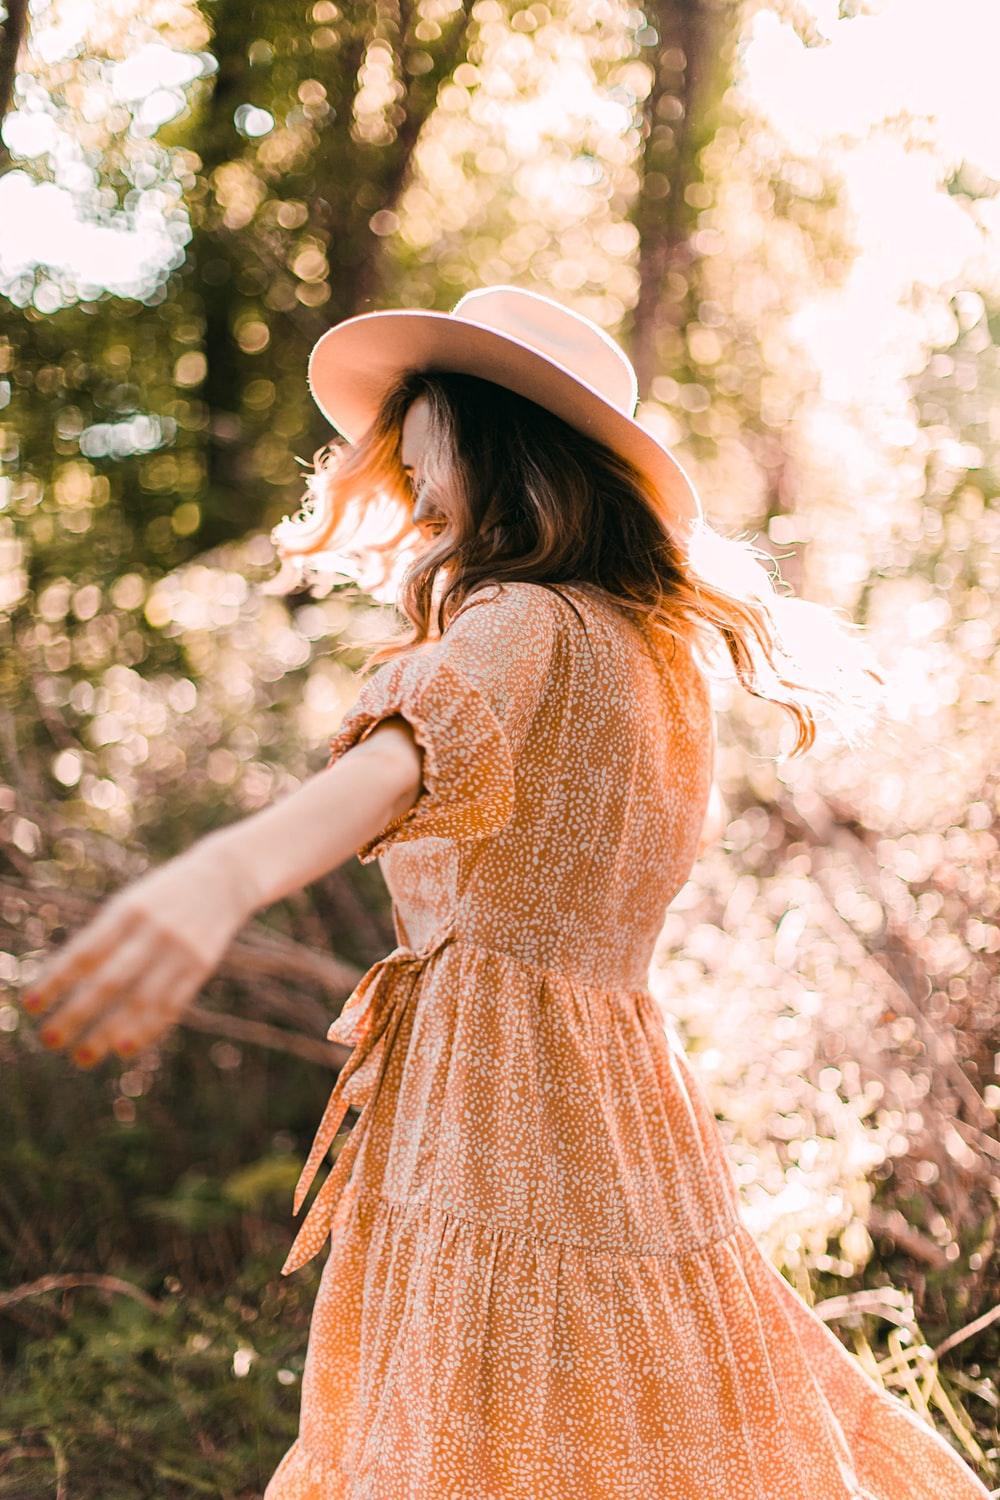 woman in brown and white dress wearing brown hat standing near white flowers during daytime